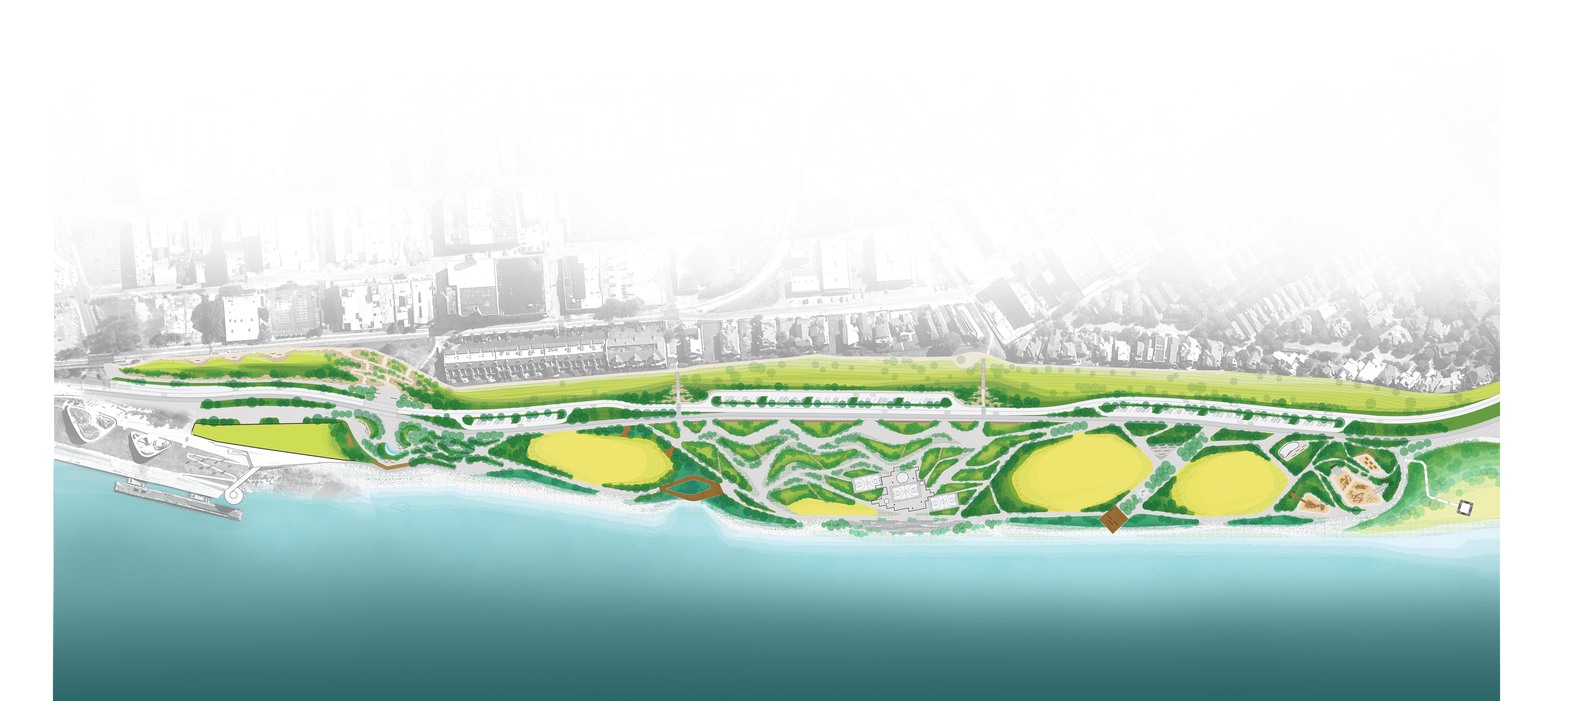 06_Tom_Lee_Park_Site_Plan_(c)_SCAPE.jpg